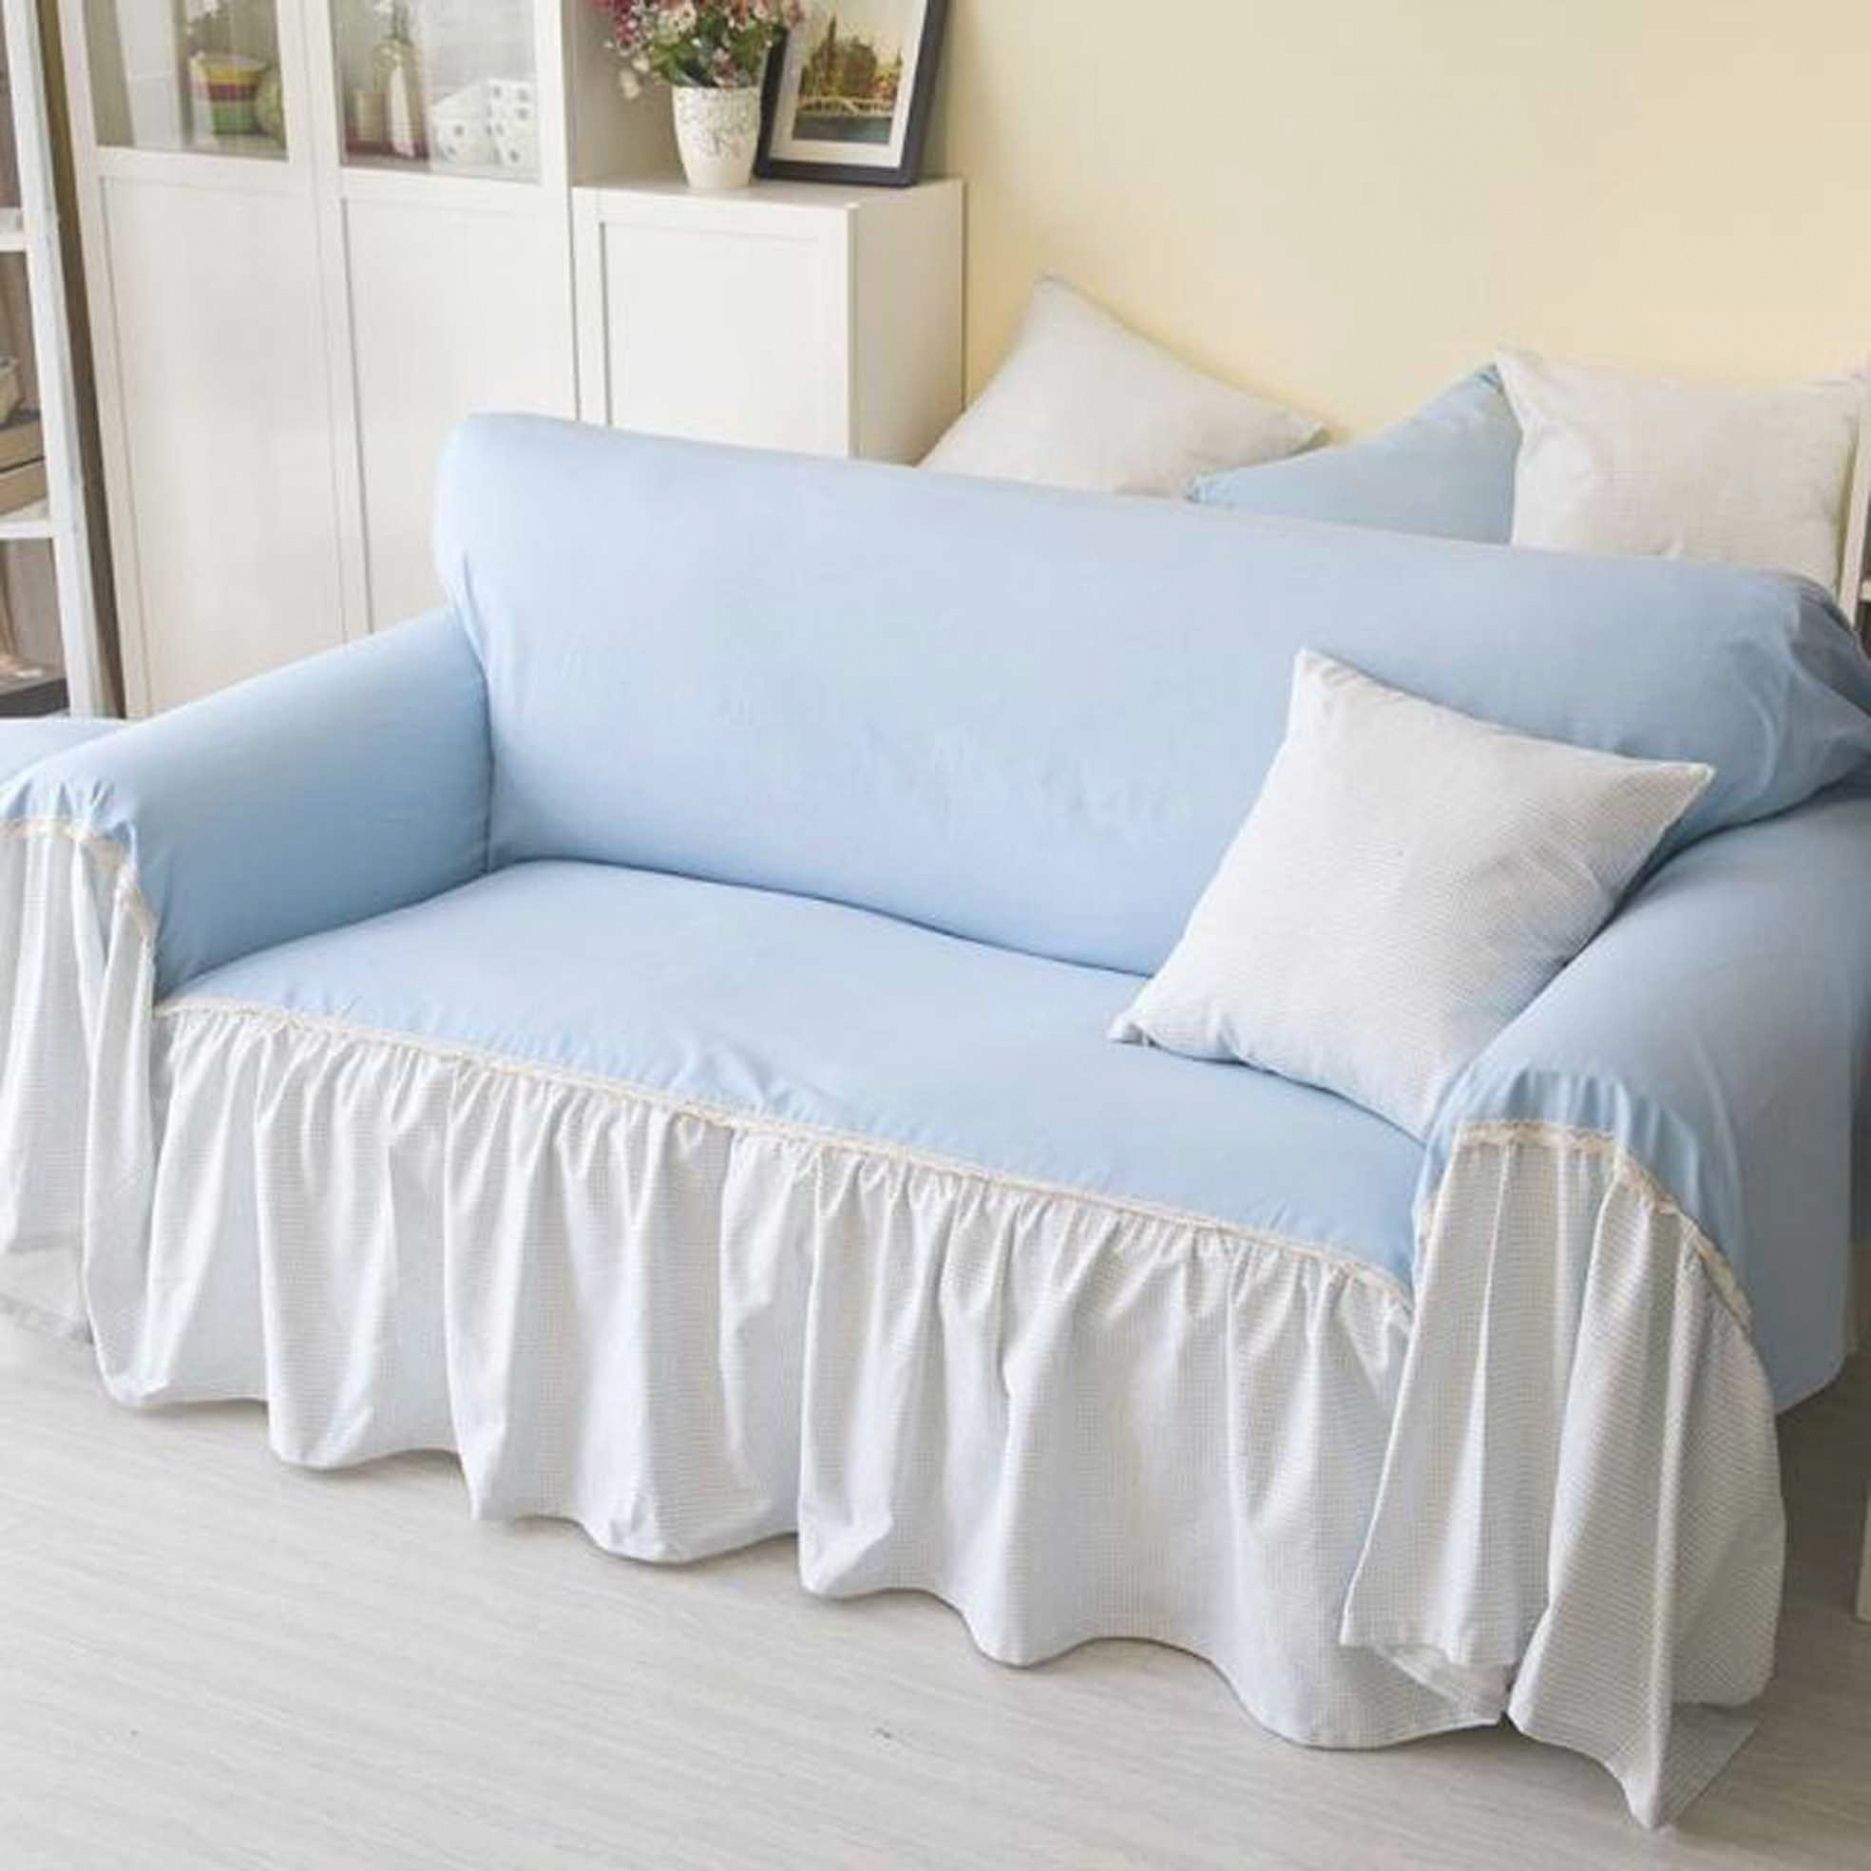 sofa covers bed bath and beyond best